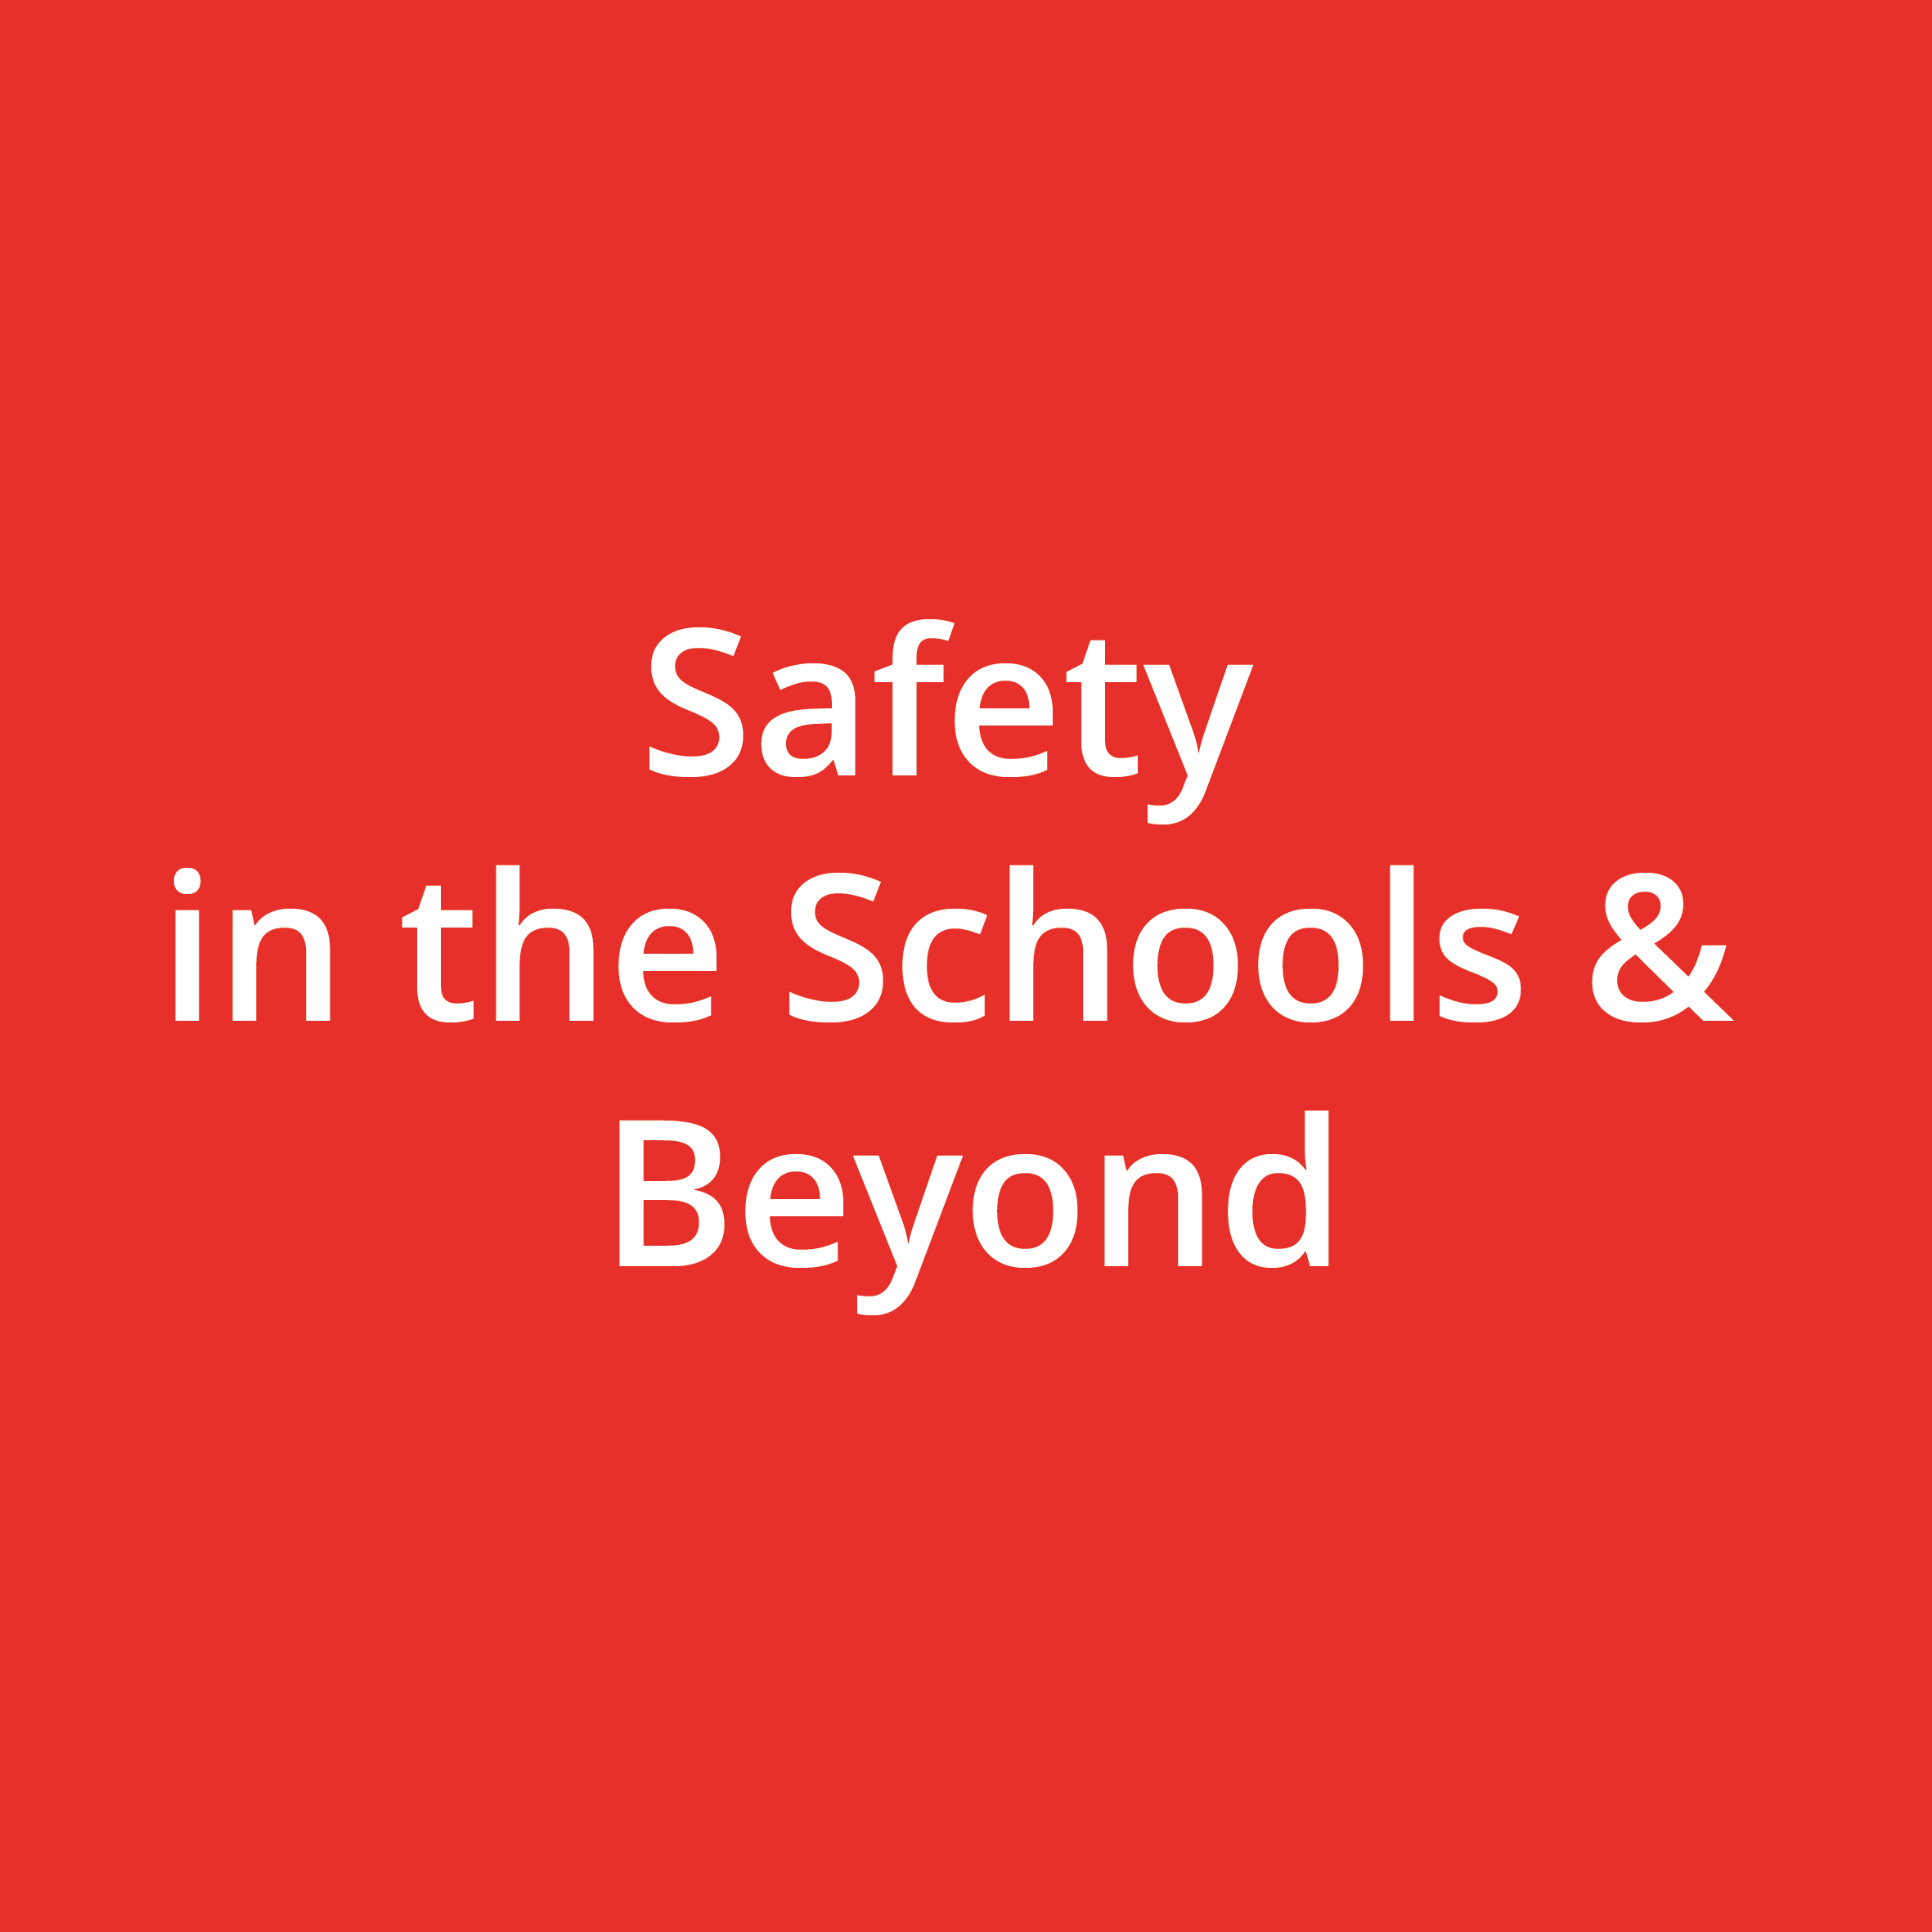 Safety in the Schools & Beyond